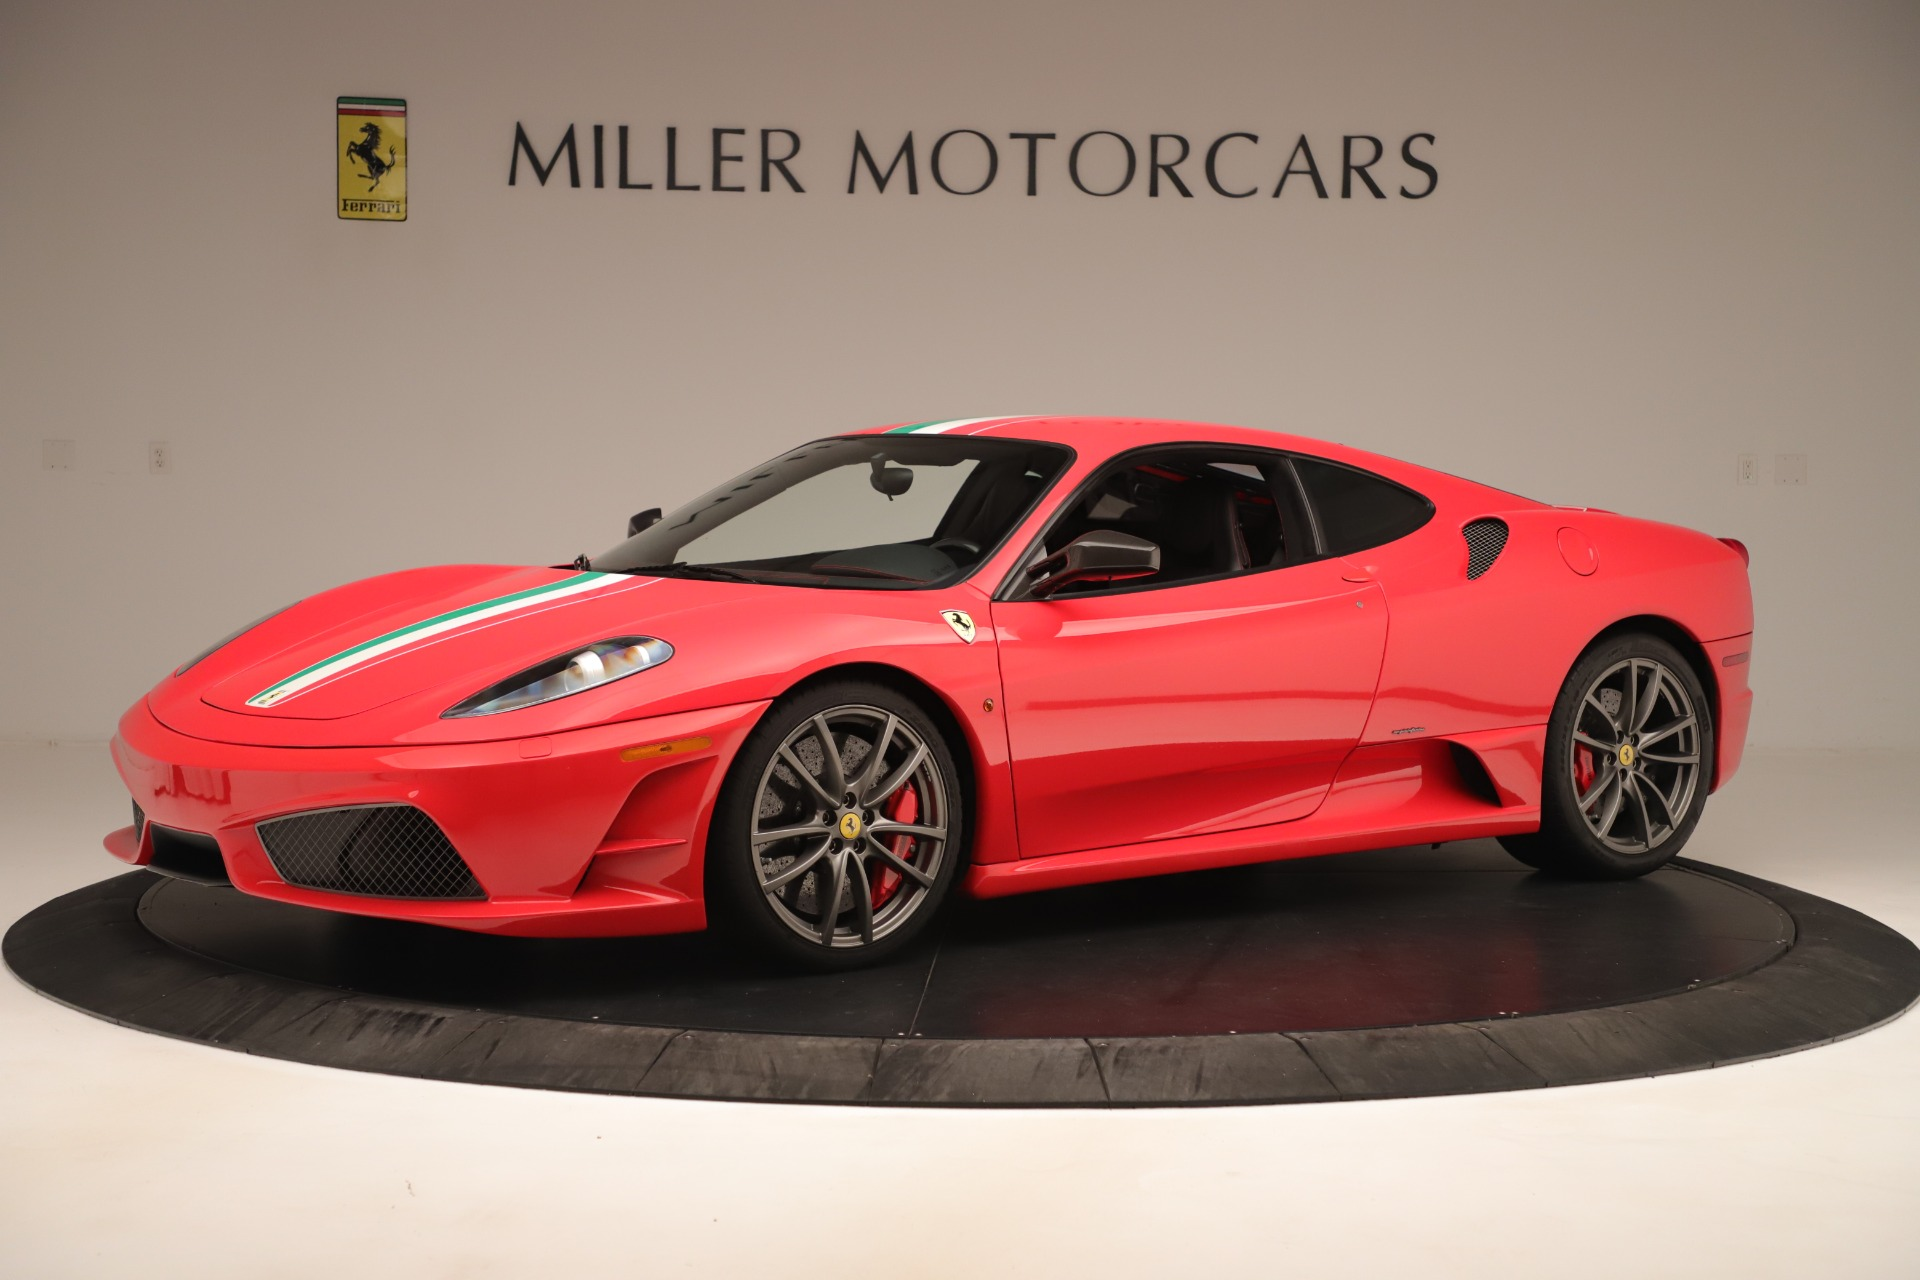 Used 2008 Ferrari F430 Scuderia For Sale In Greenwich, CT 3381_p2